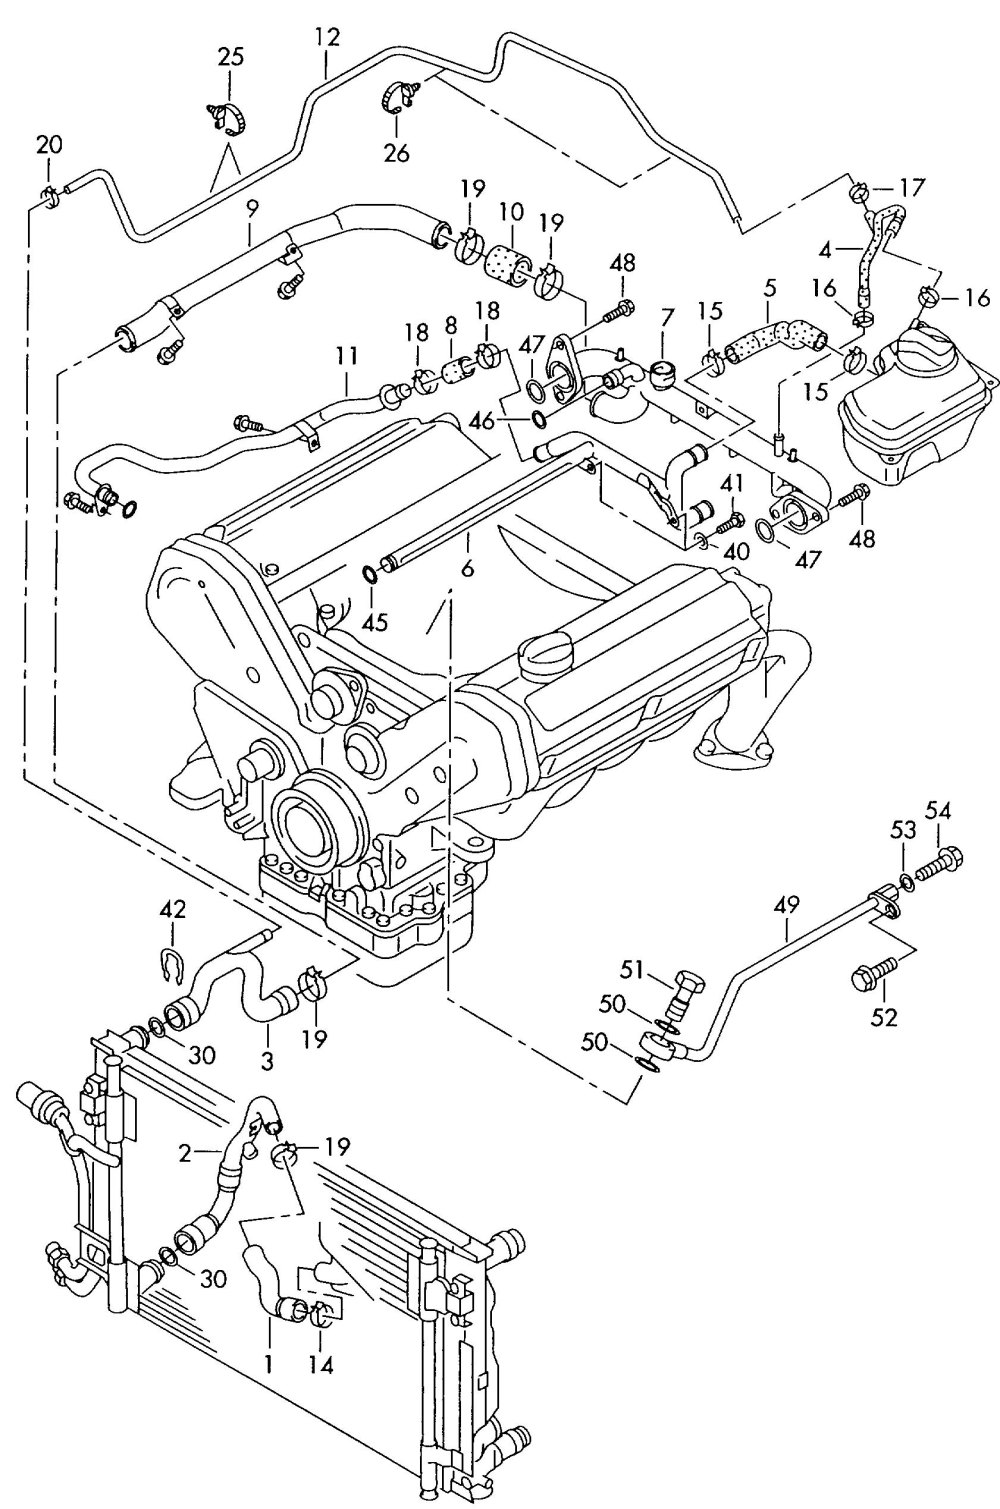 medium resolution of 02 audi a6 3 0 engine diagram audi a4 1 8t engine wiring vw 1 8t engine diagram 2004 audi a4 engine diagram